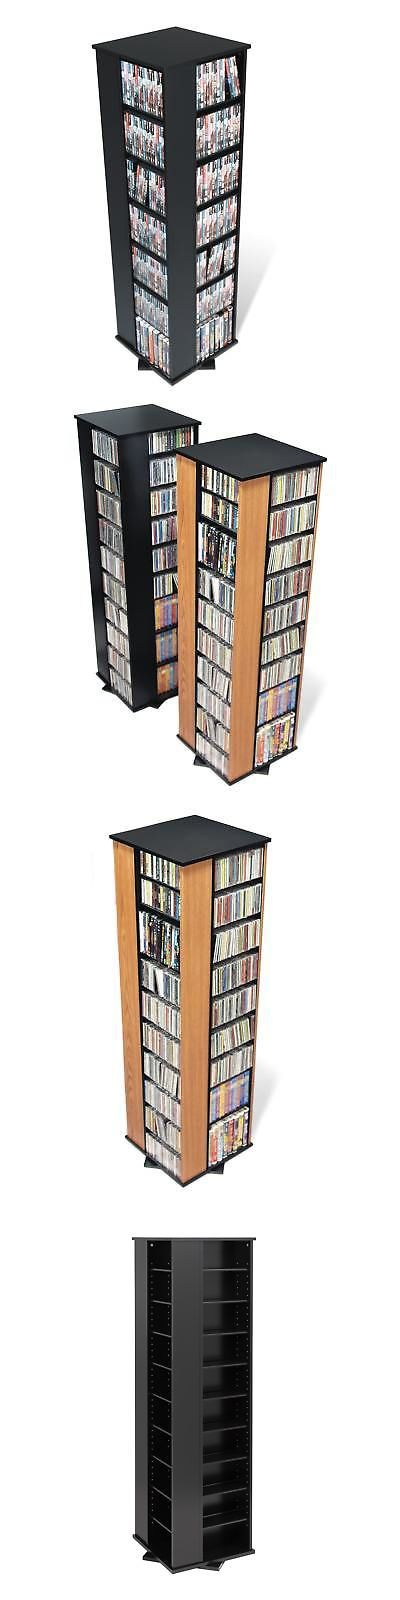 CD and Video Racks 22653: Large 4-Sided Spinning Media Tower -> BUY IT NOW ONLY: $199.49 on eBay!